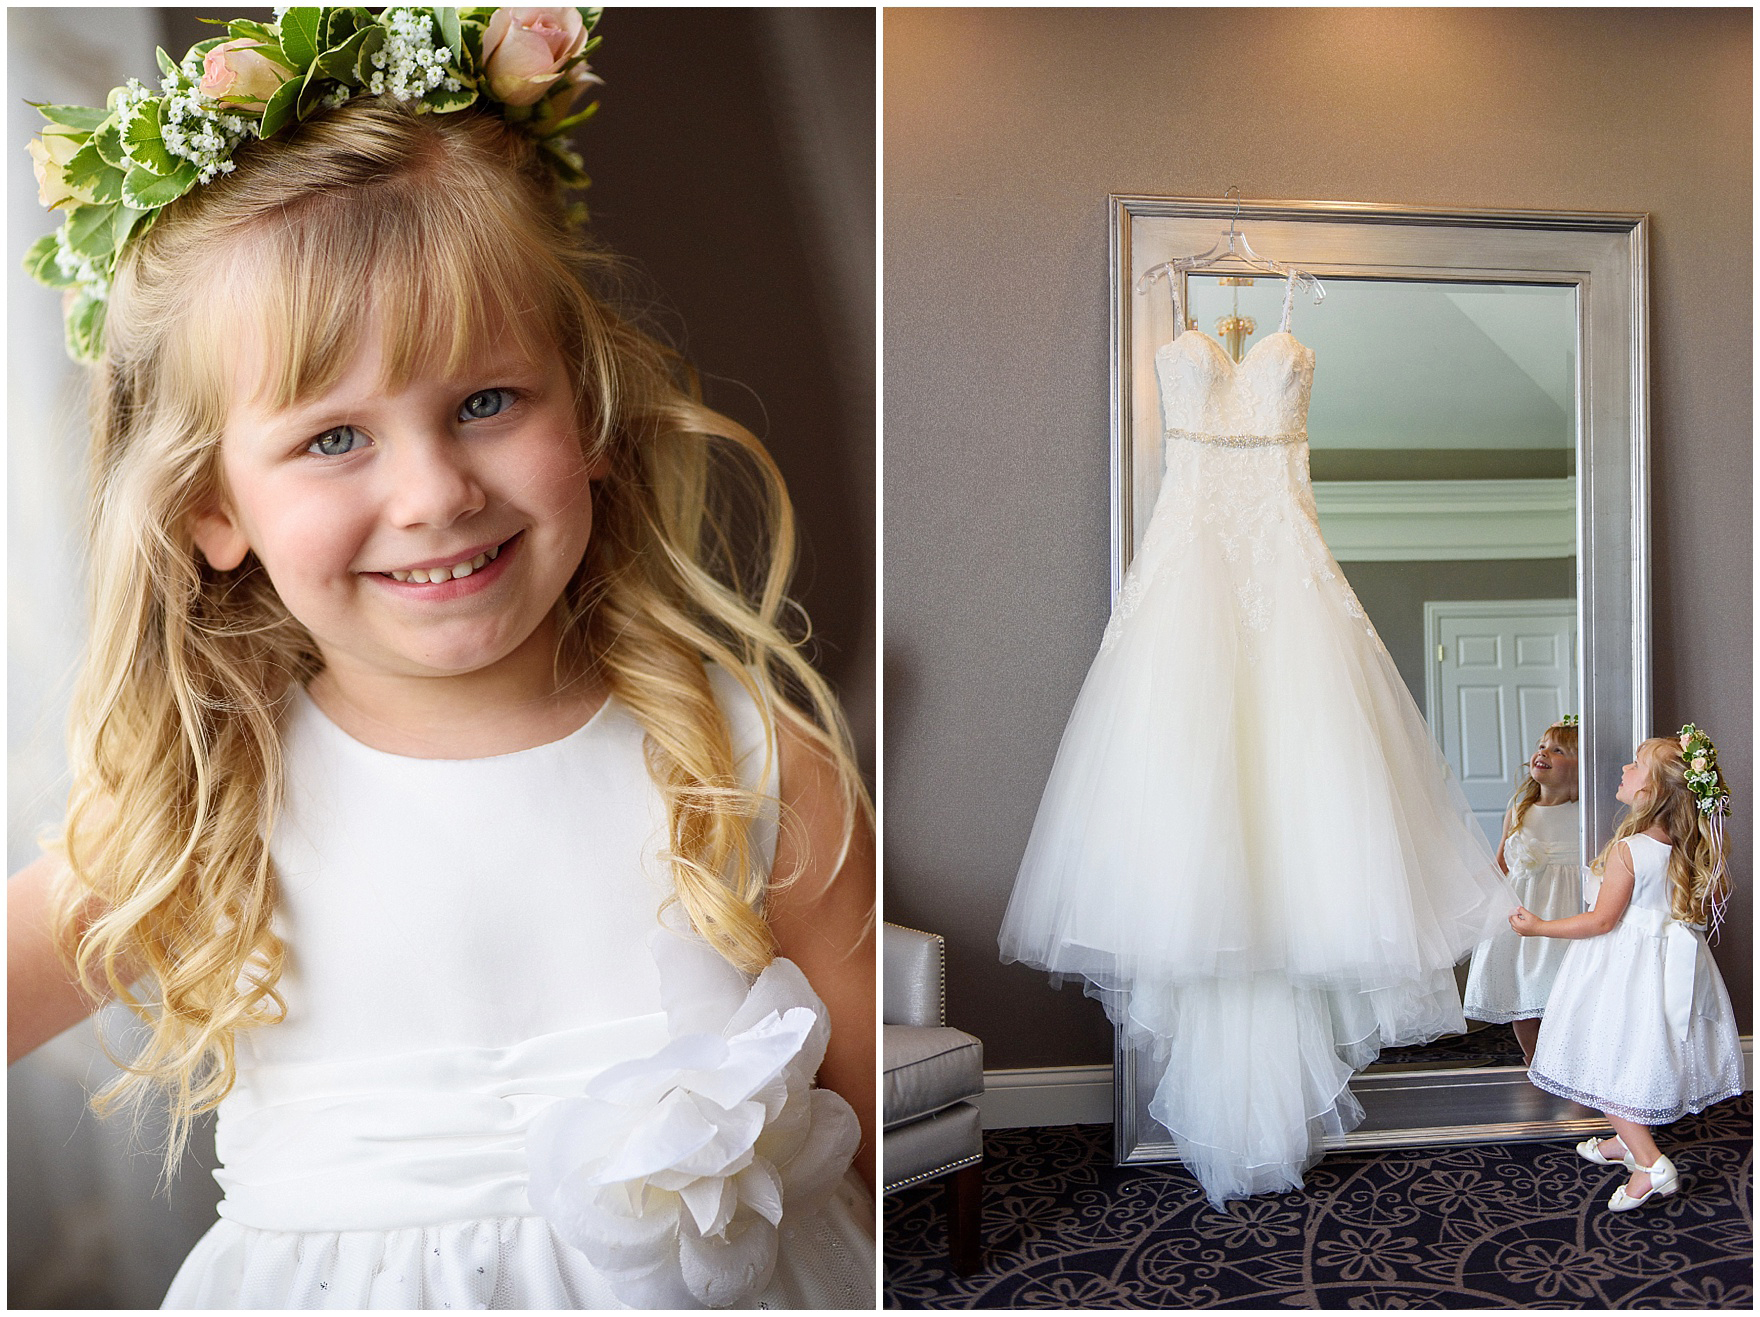 A flower girl with a flower crown looks at the bride's gown for an Itasca Country Club Illinois wedding.